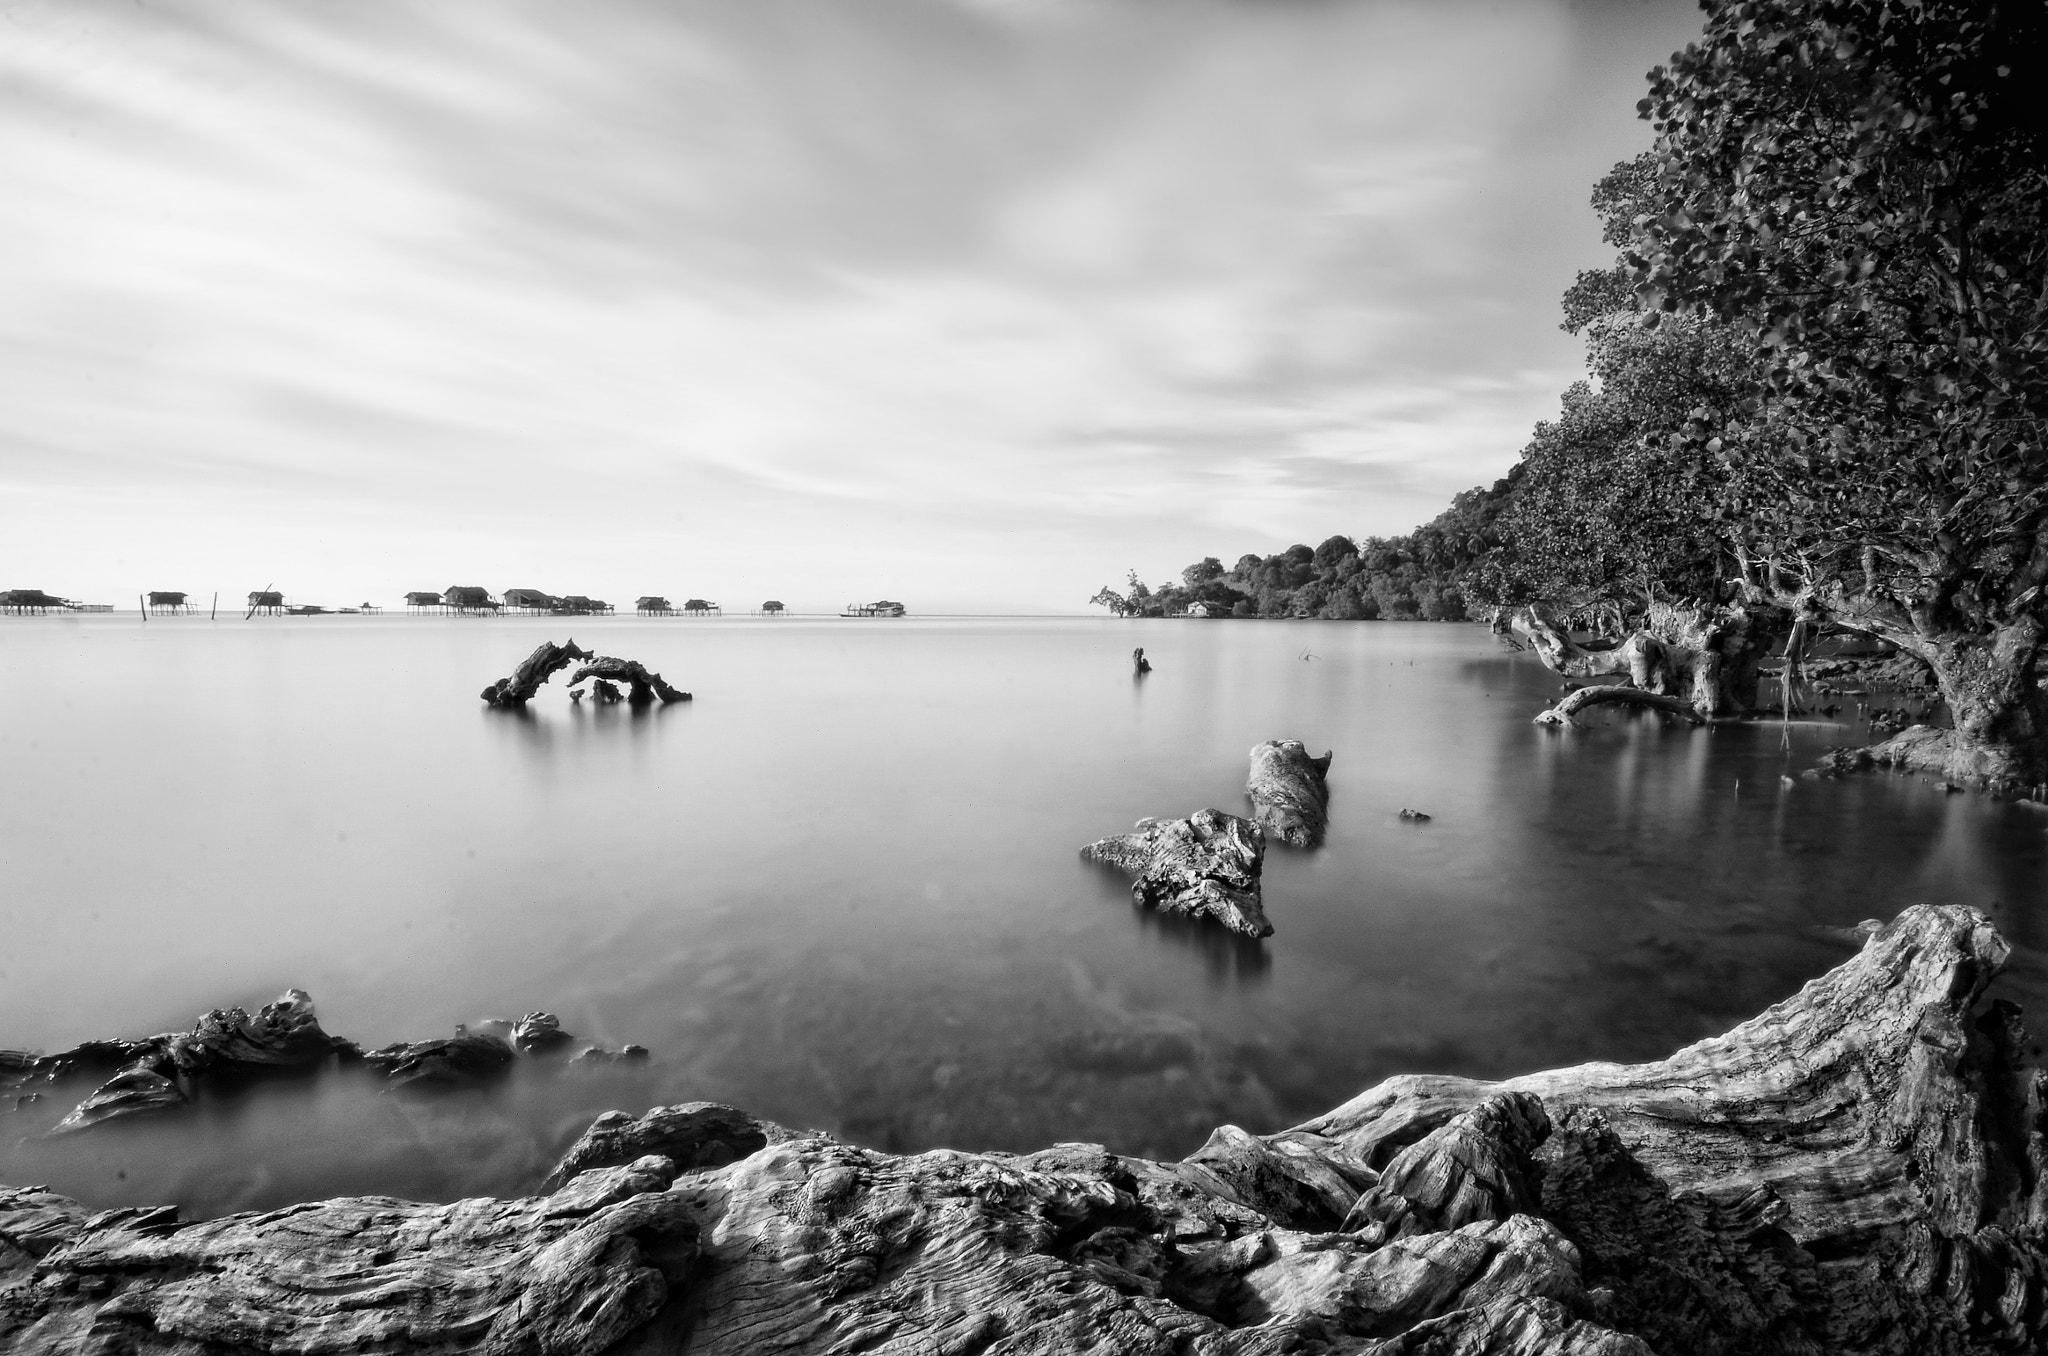 Photograph The Root by darmin ladiro on 500px